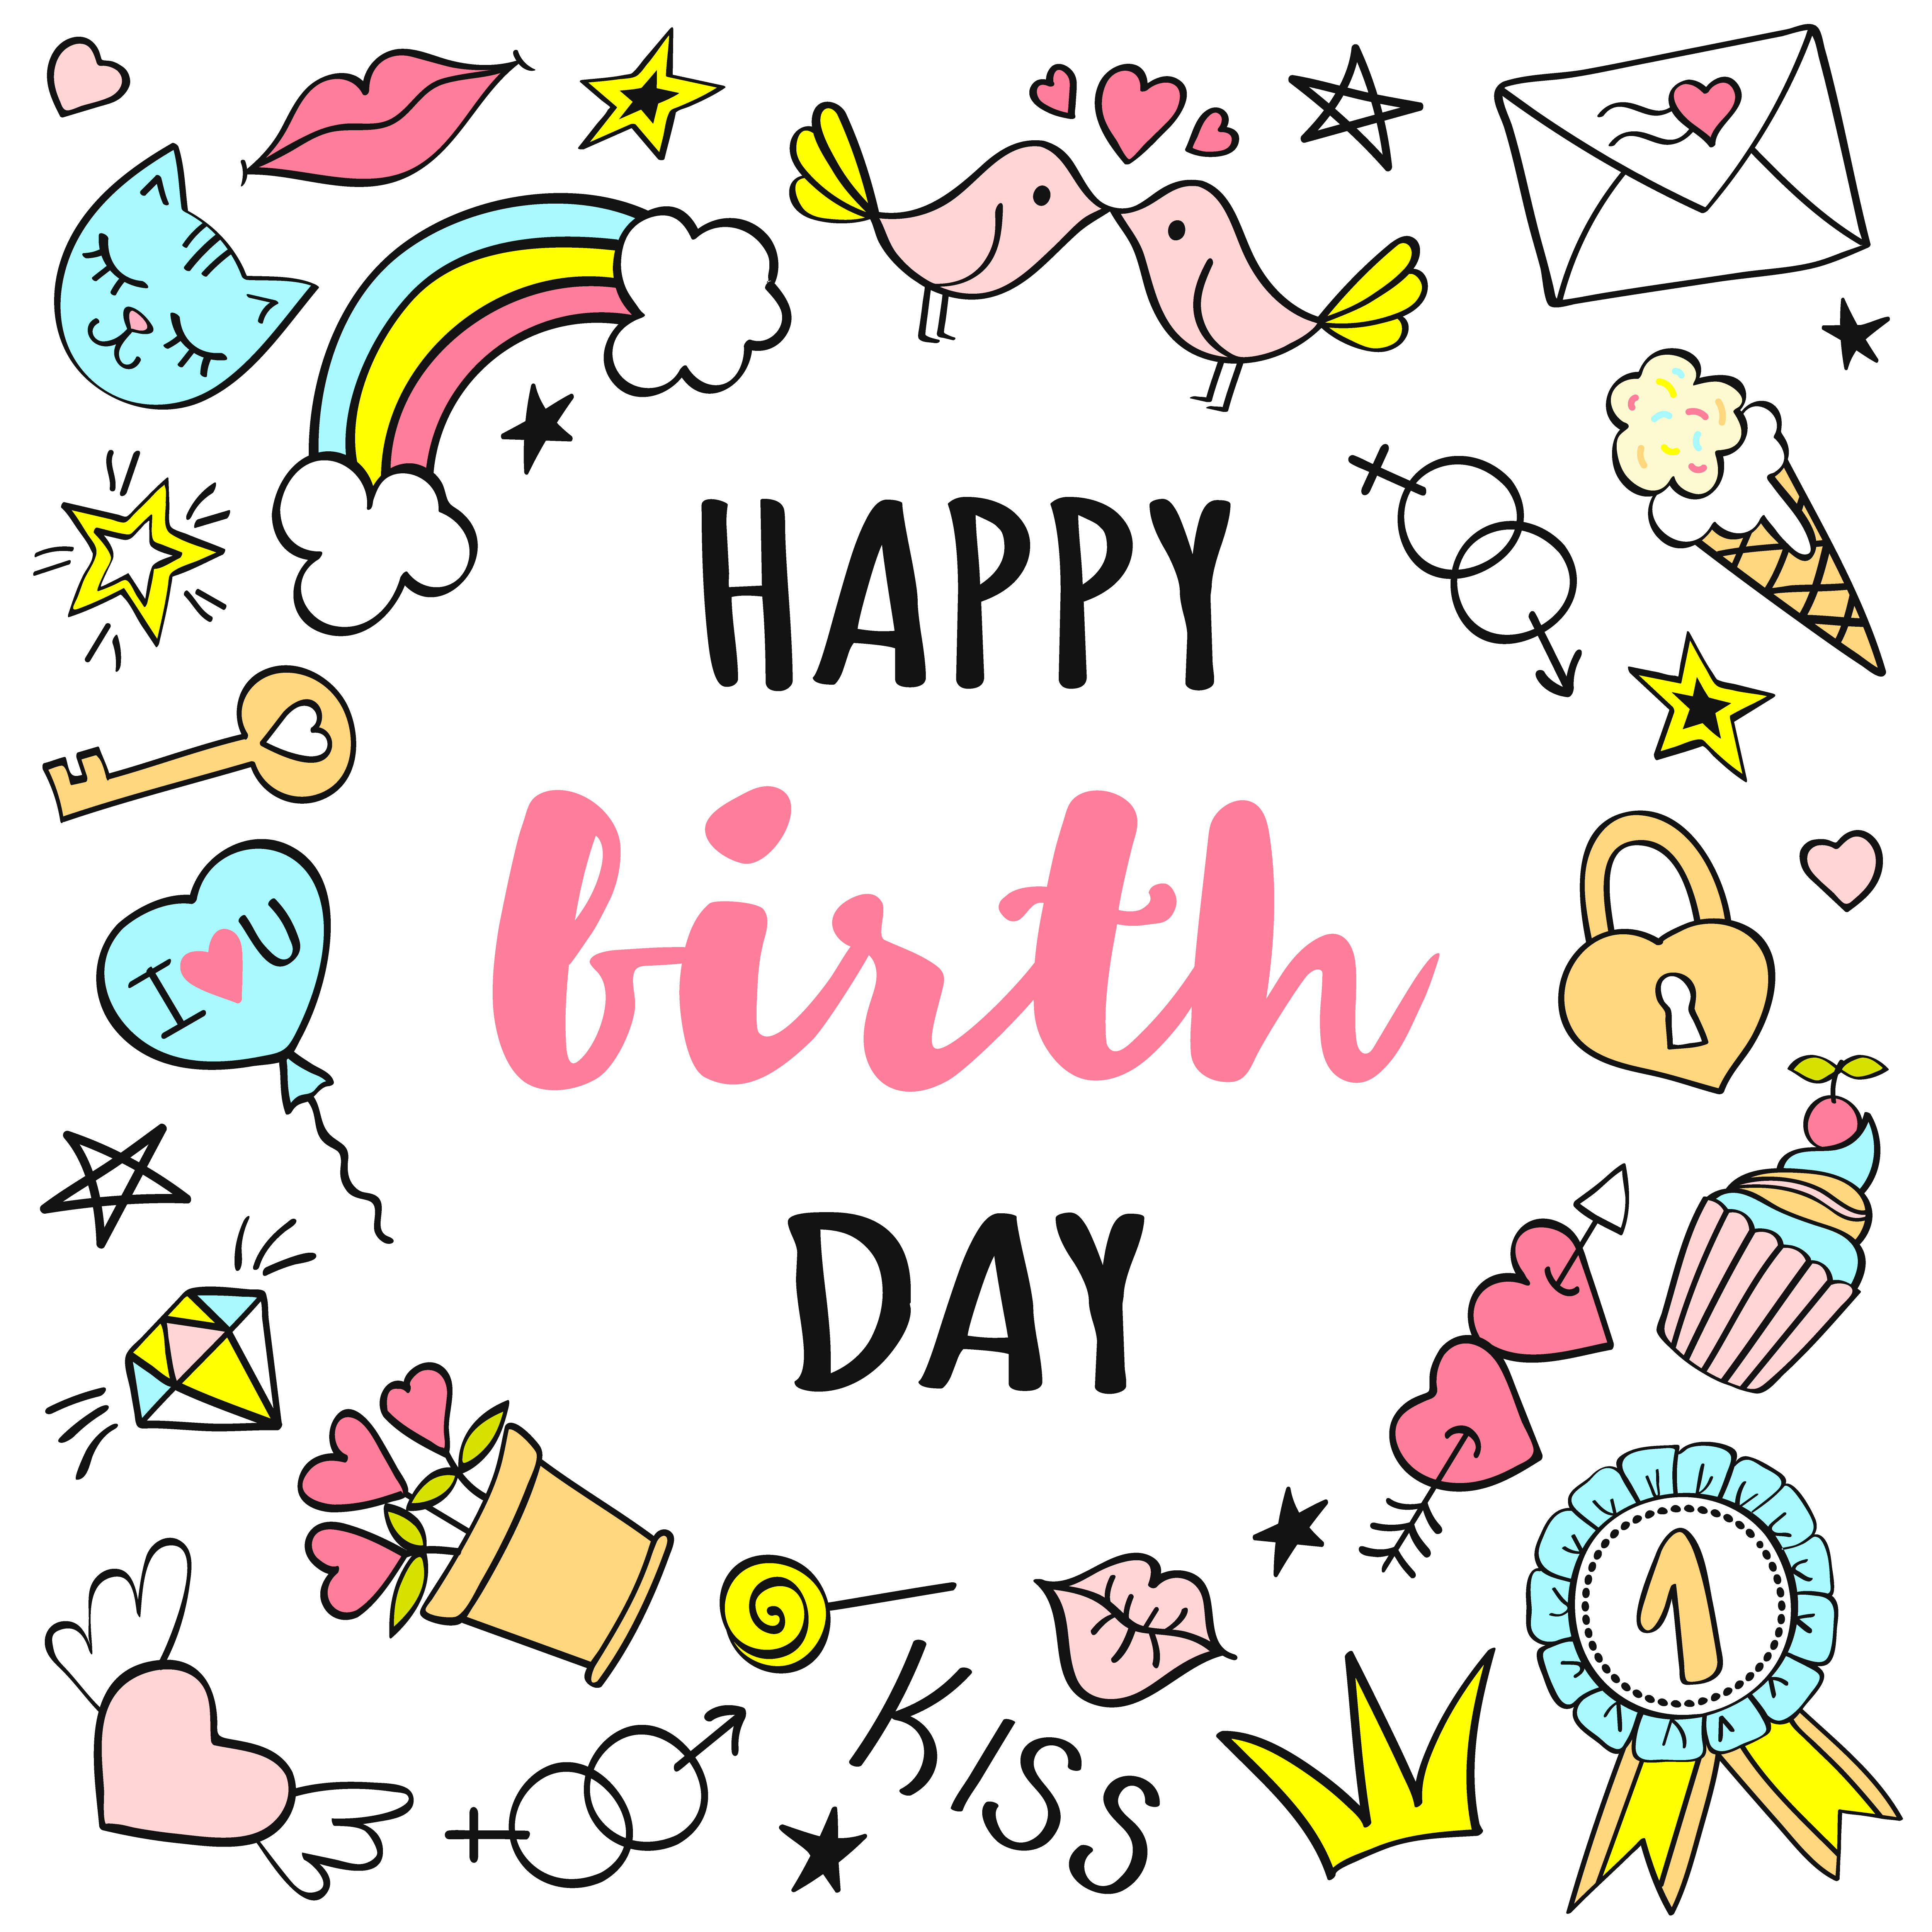 Happy Birthday Lettering With Girly Doodles For Greeting